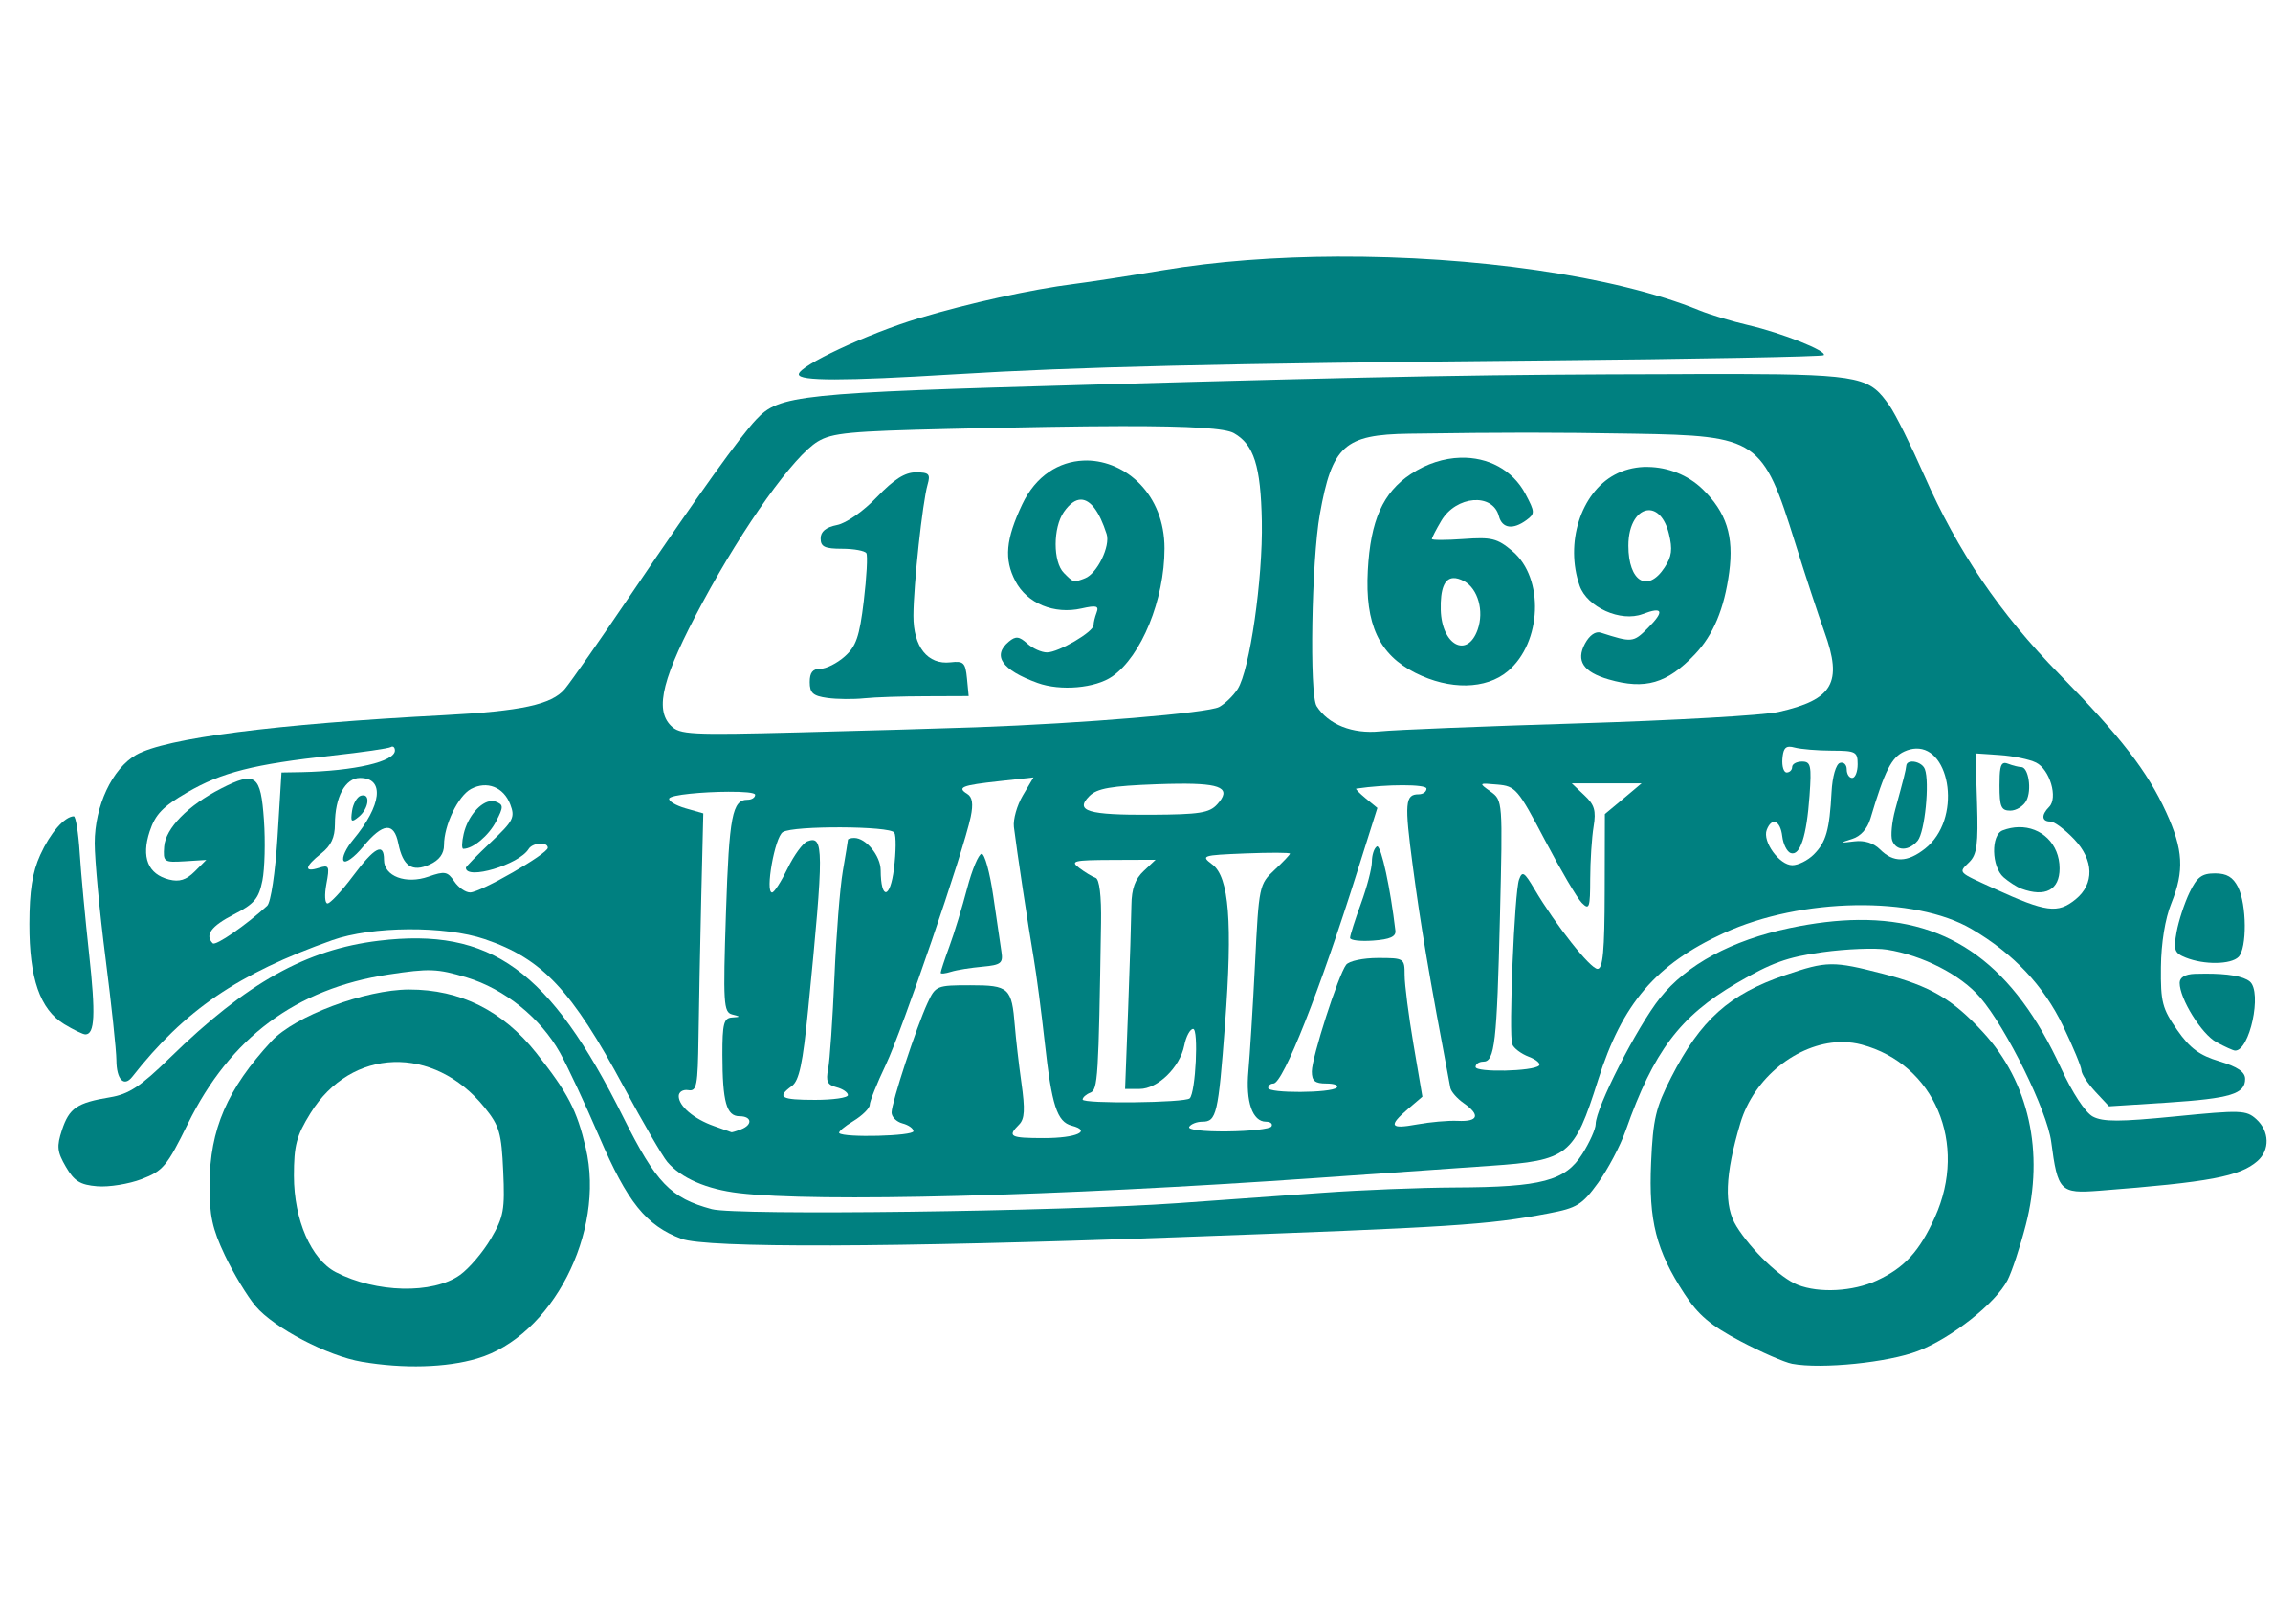 THE ITALIAN JOB by dordy